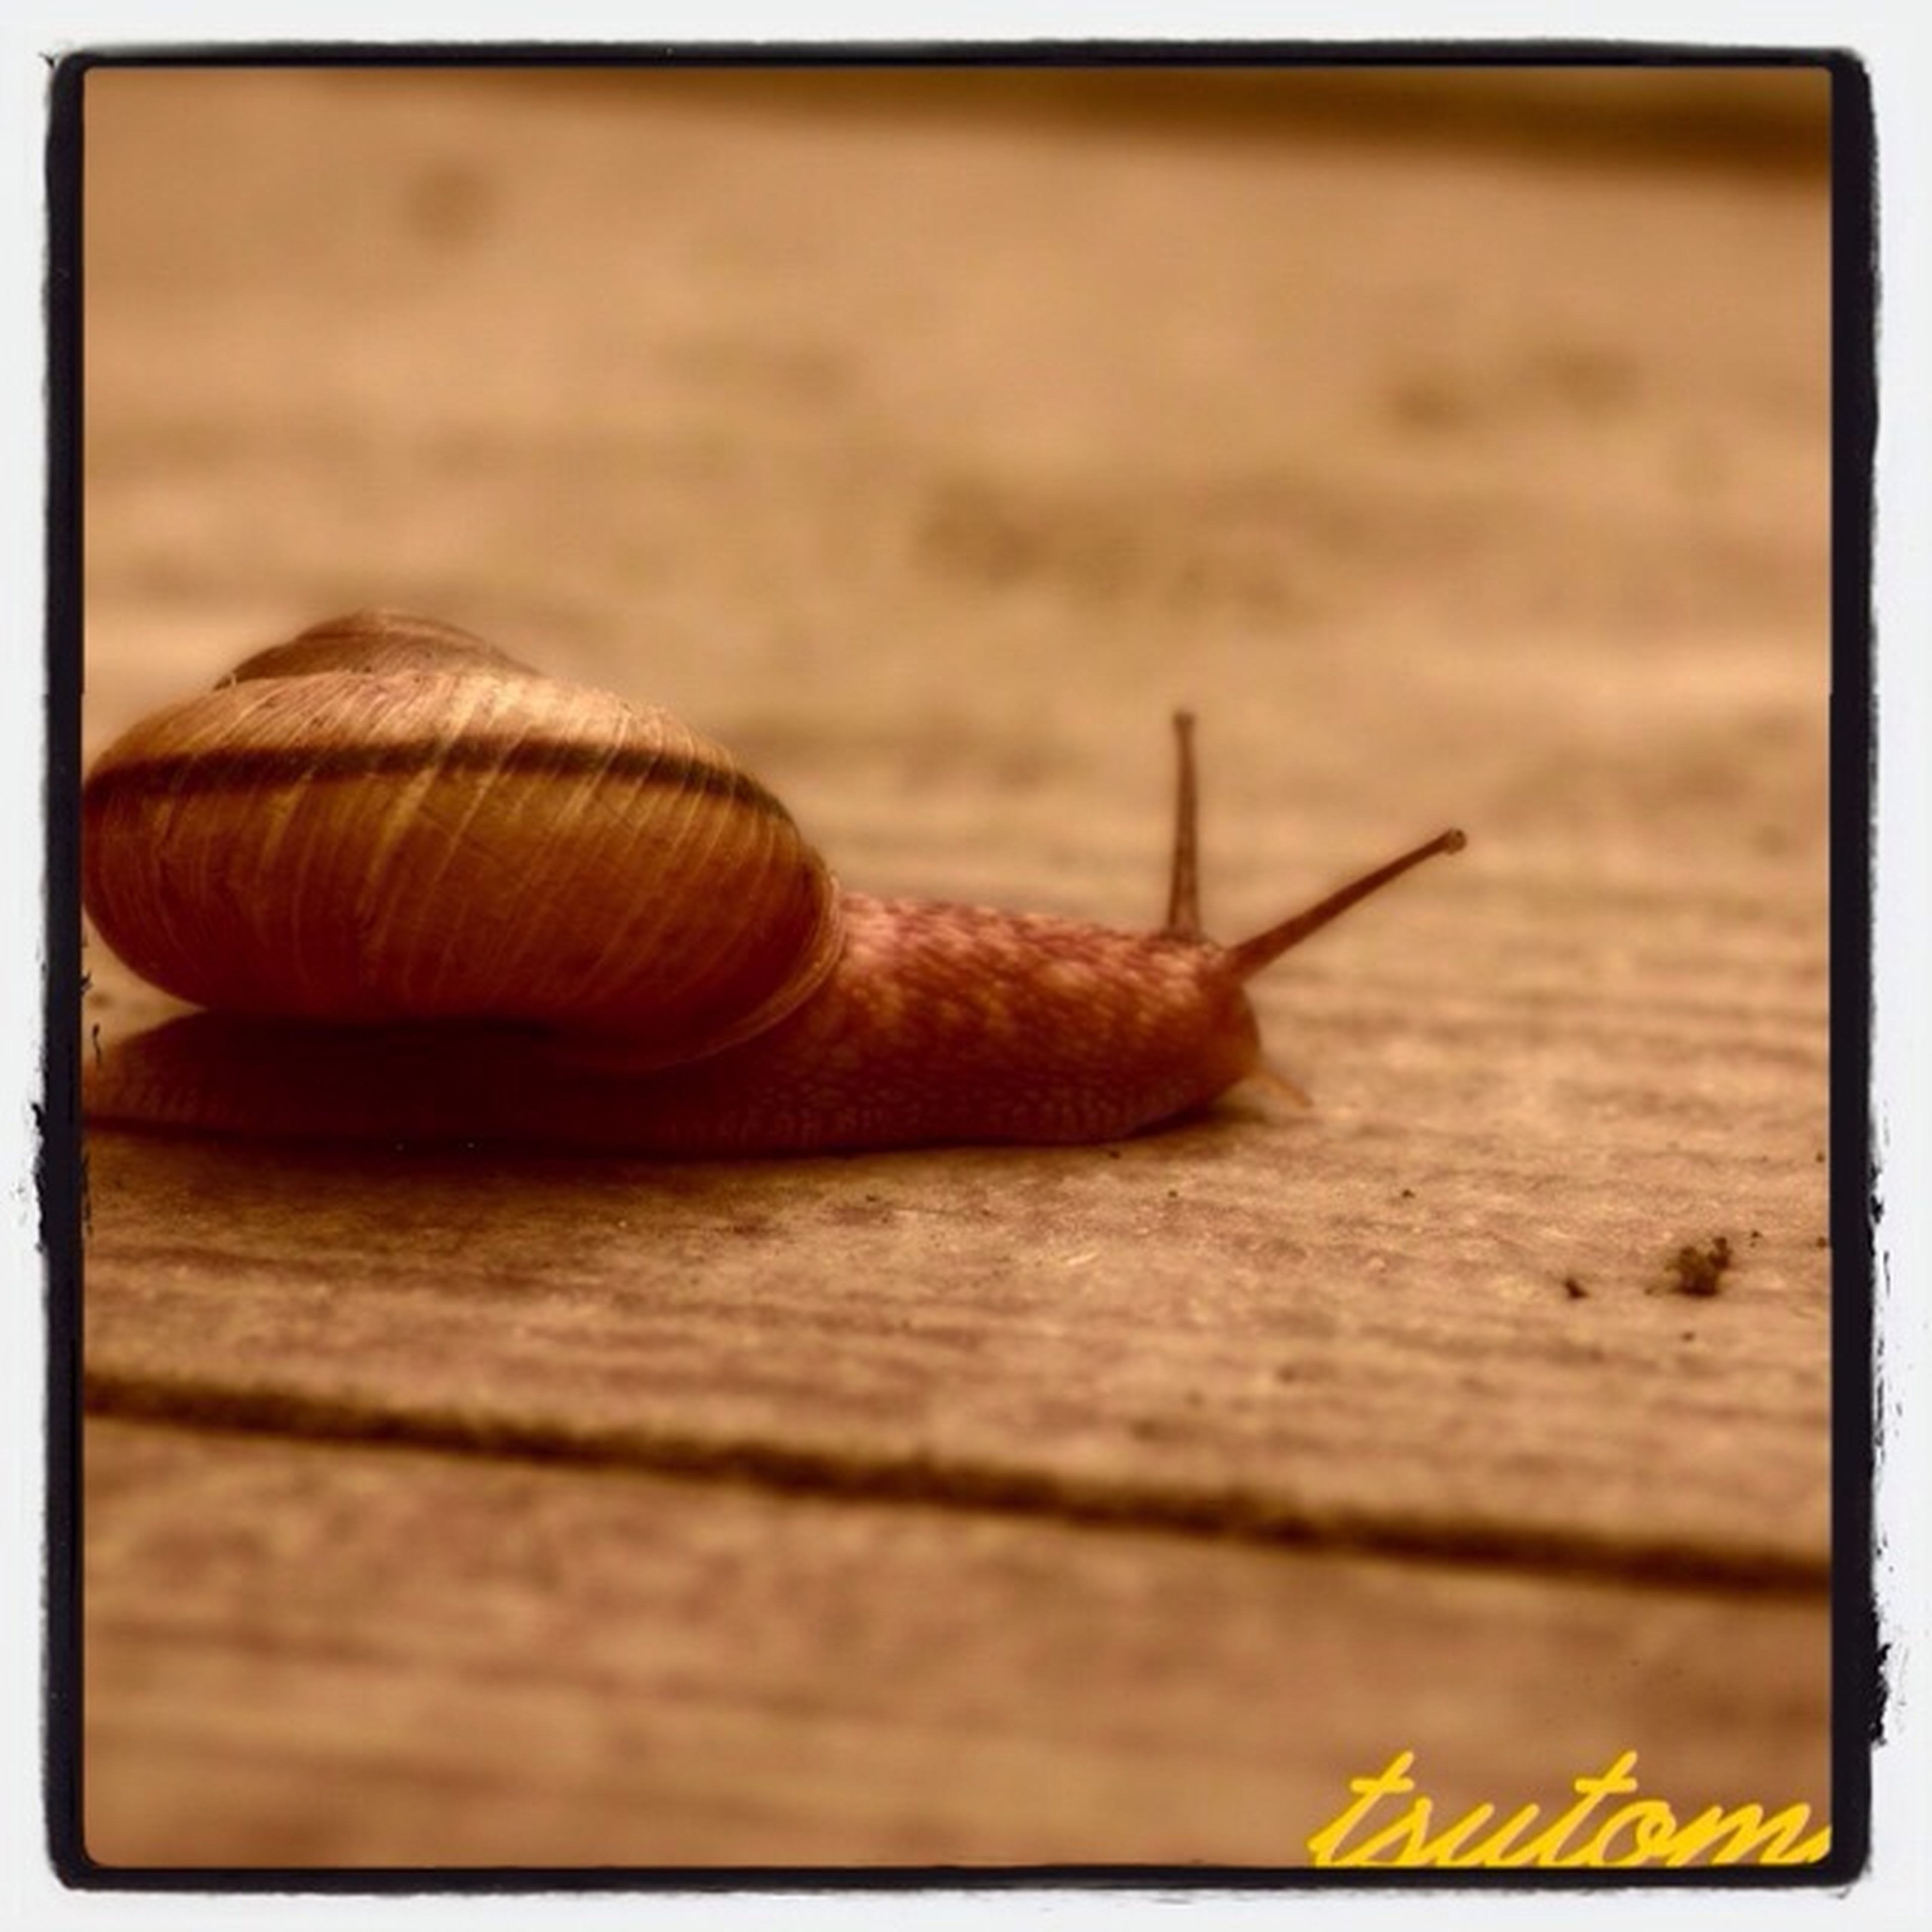 animal themes, one animal, animals in the wild, wildlife, transfer print, close-up, insect, wood - material, auto post production filter, snail, wooden, wood, selective focus, plank, animal shell, brown, focus on foreground, day, textured, outdoors